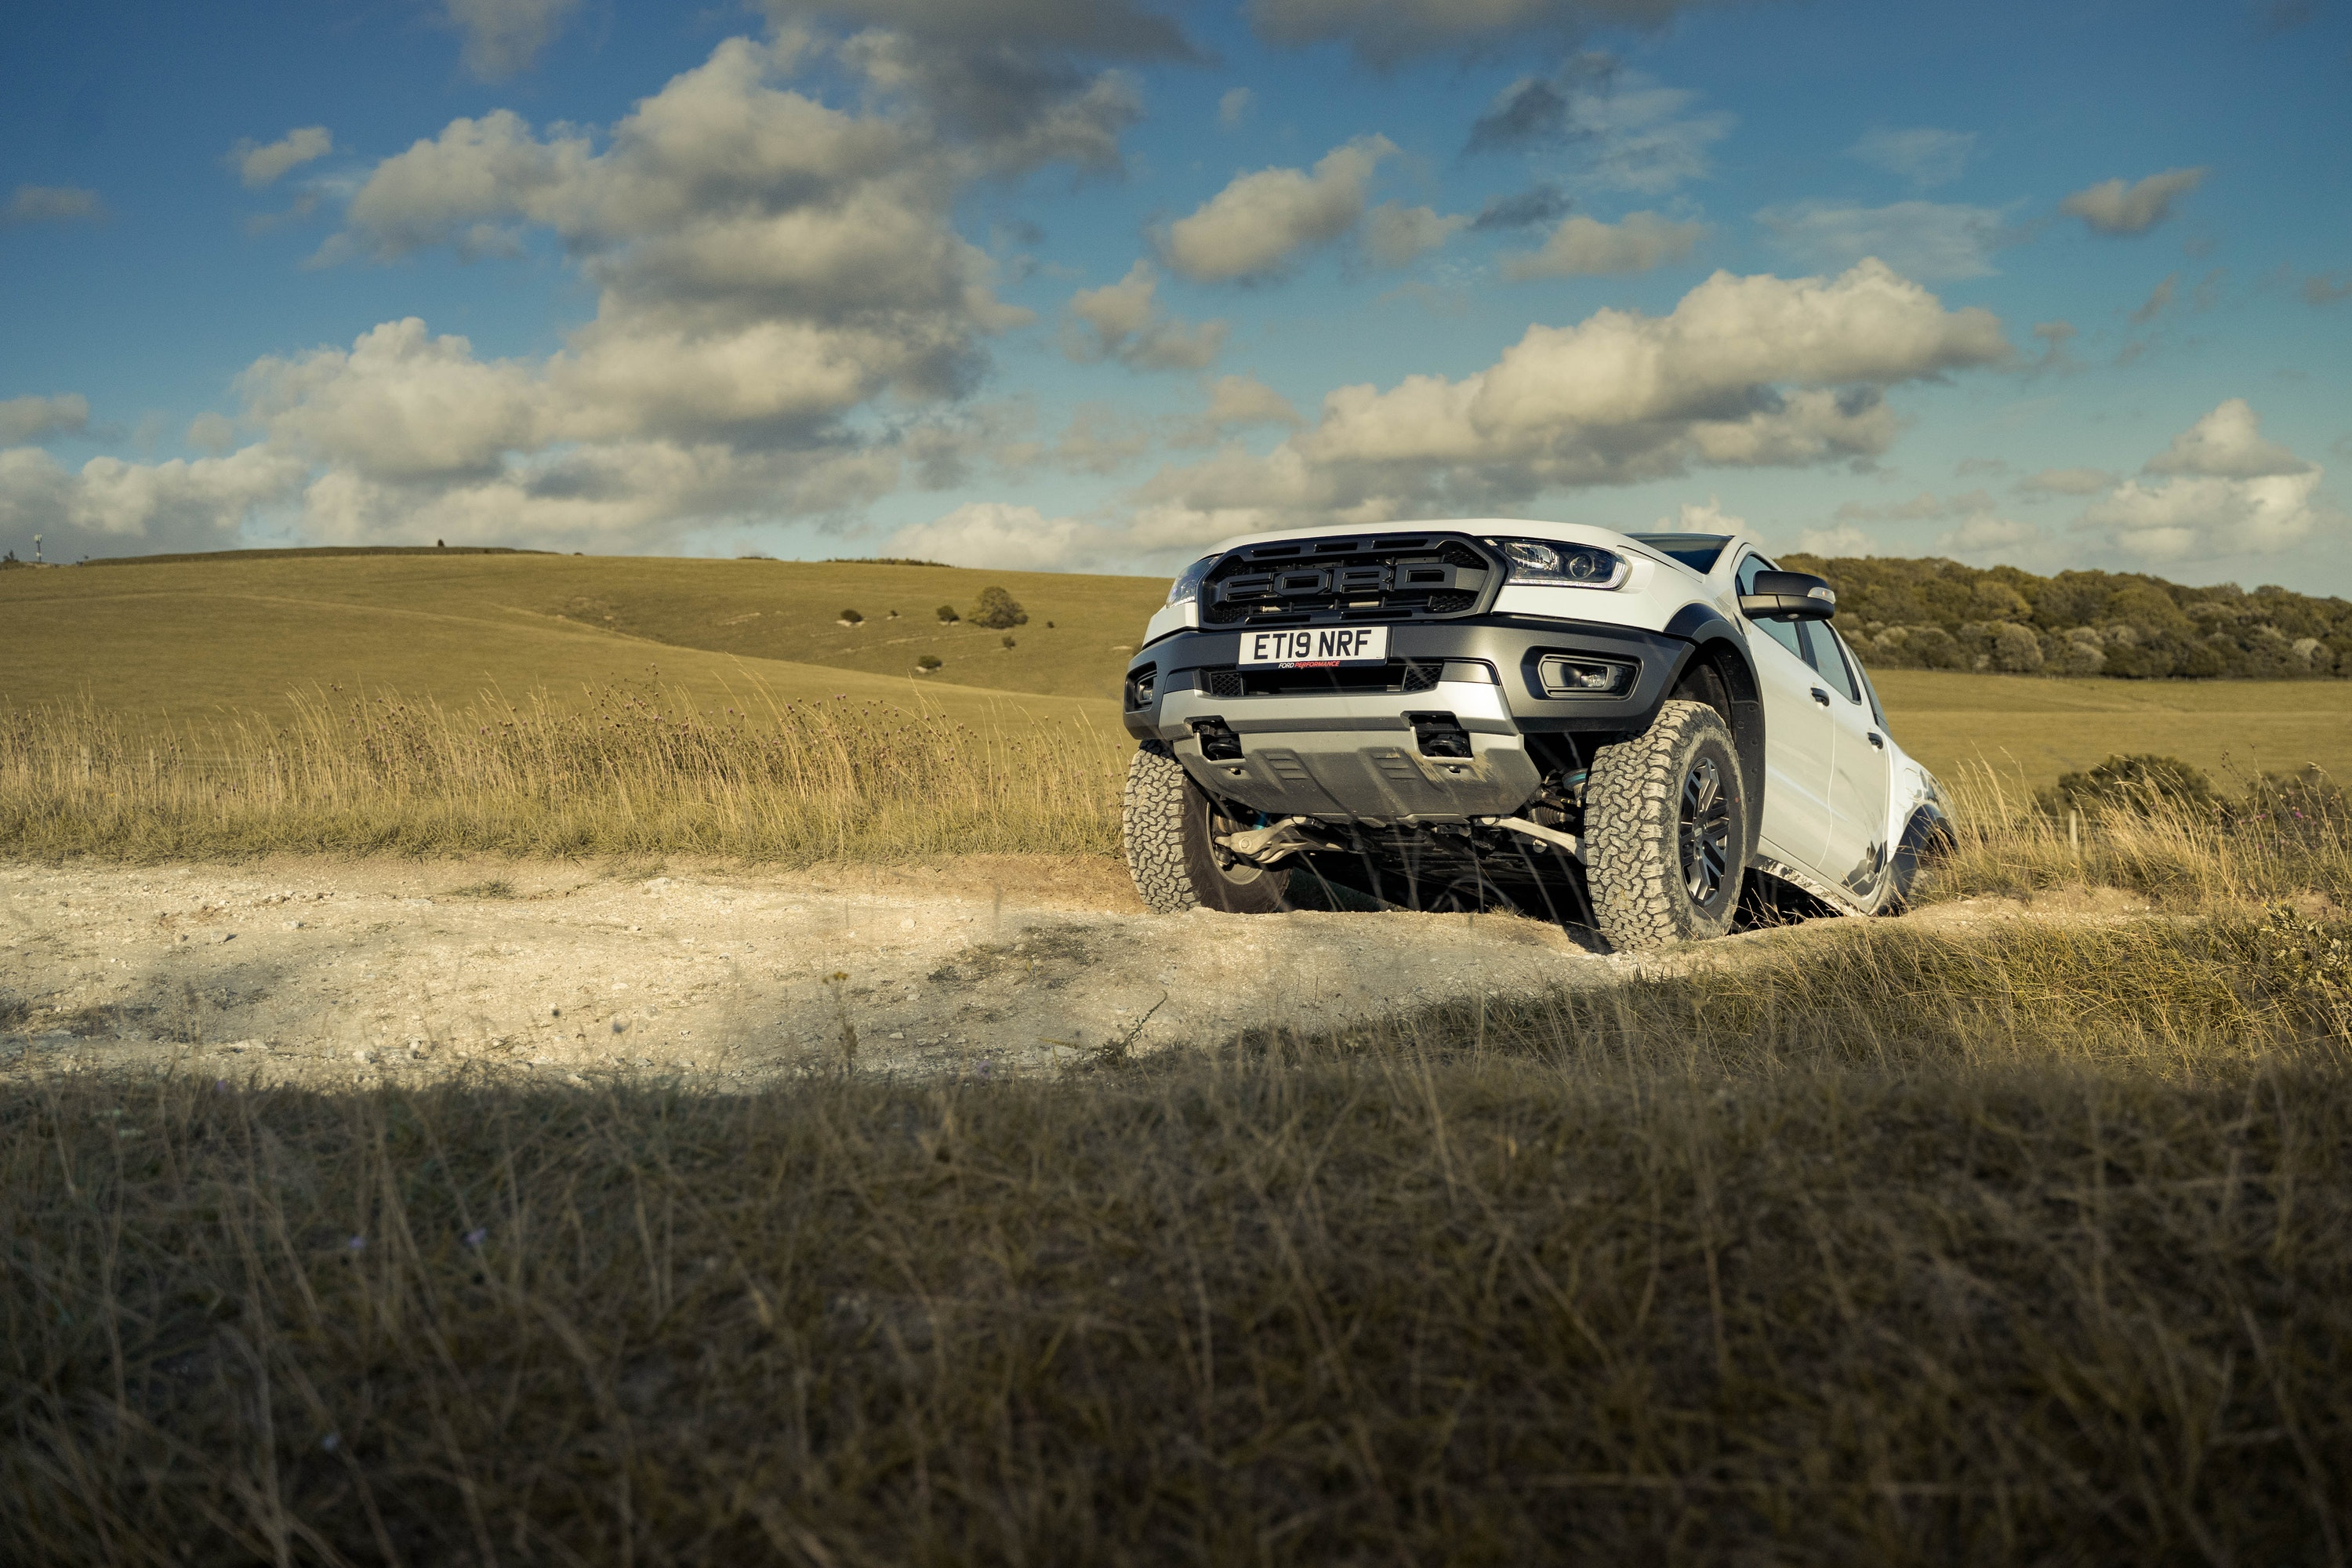 Ford Range Raptor driving on dirt terrain